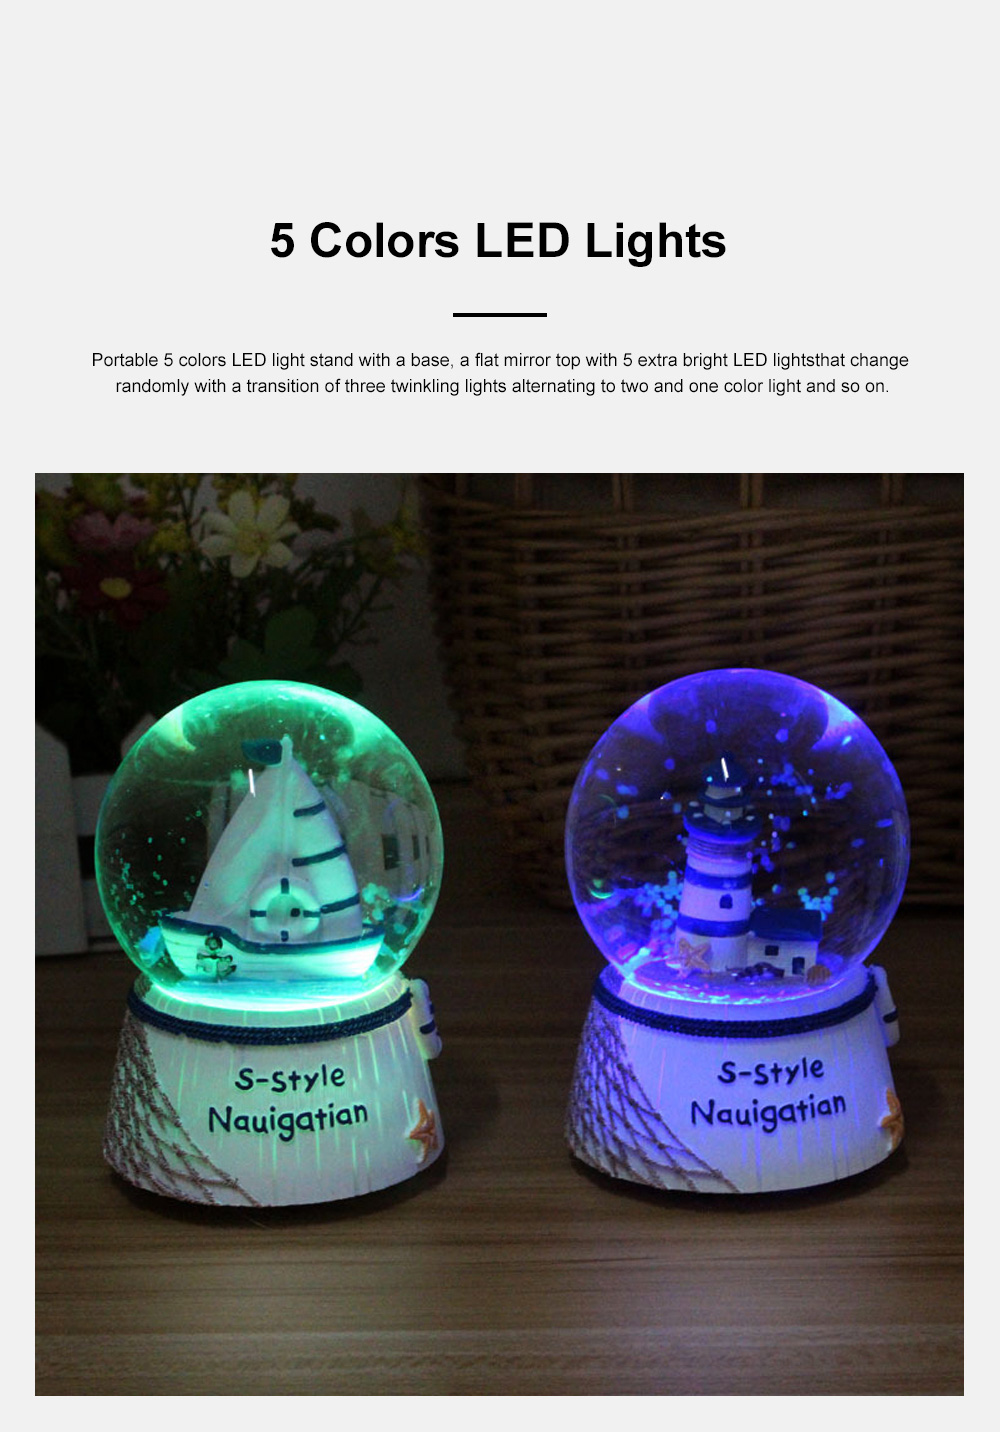 Mini Sailing Lighthouse Crystal Ball LED Base 3D Crystal Ball Night Light with Stand 5 Colors Change for Kids Baby Bedroom Decor Birthday Gift Snow Global Musical Box 5